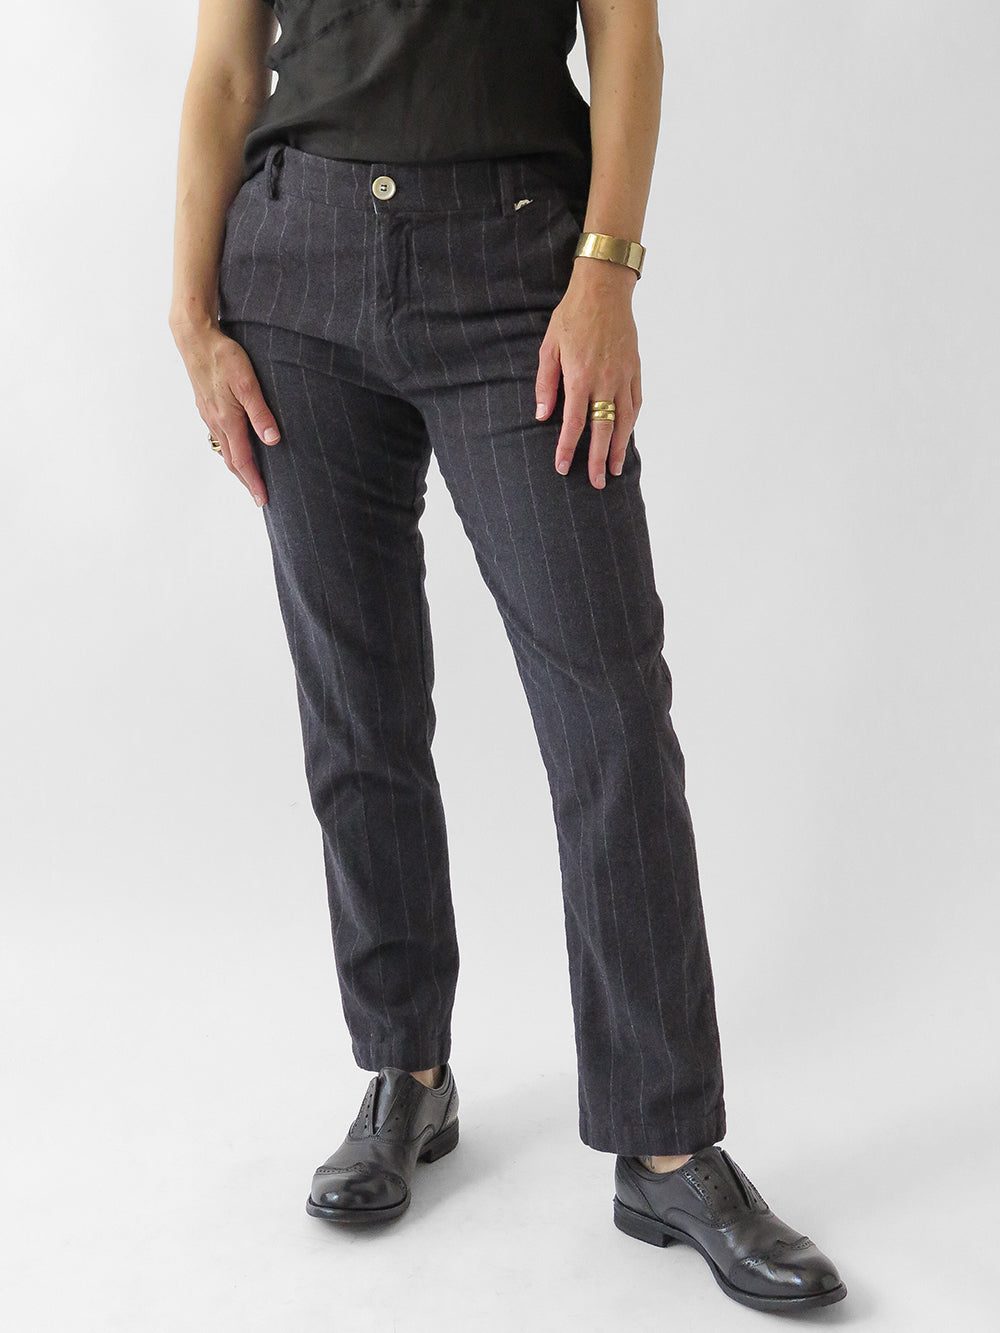 bsbee imperial pant in dark grey stripe